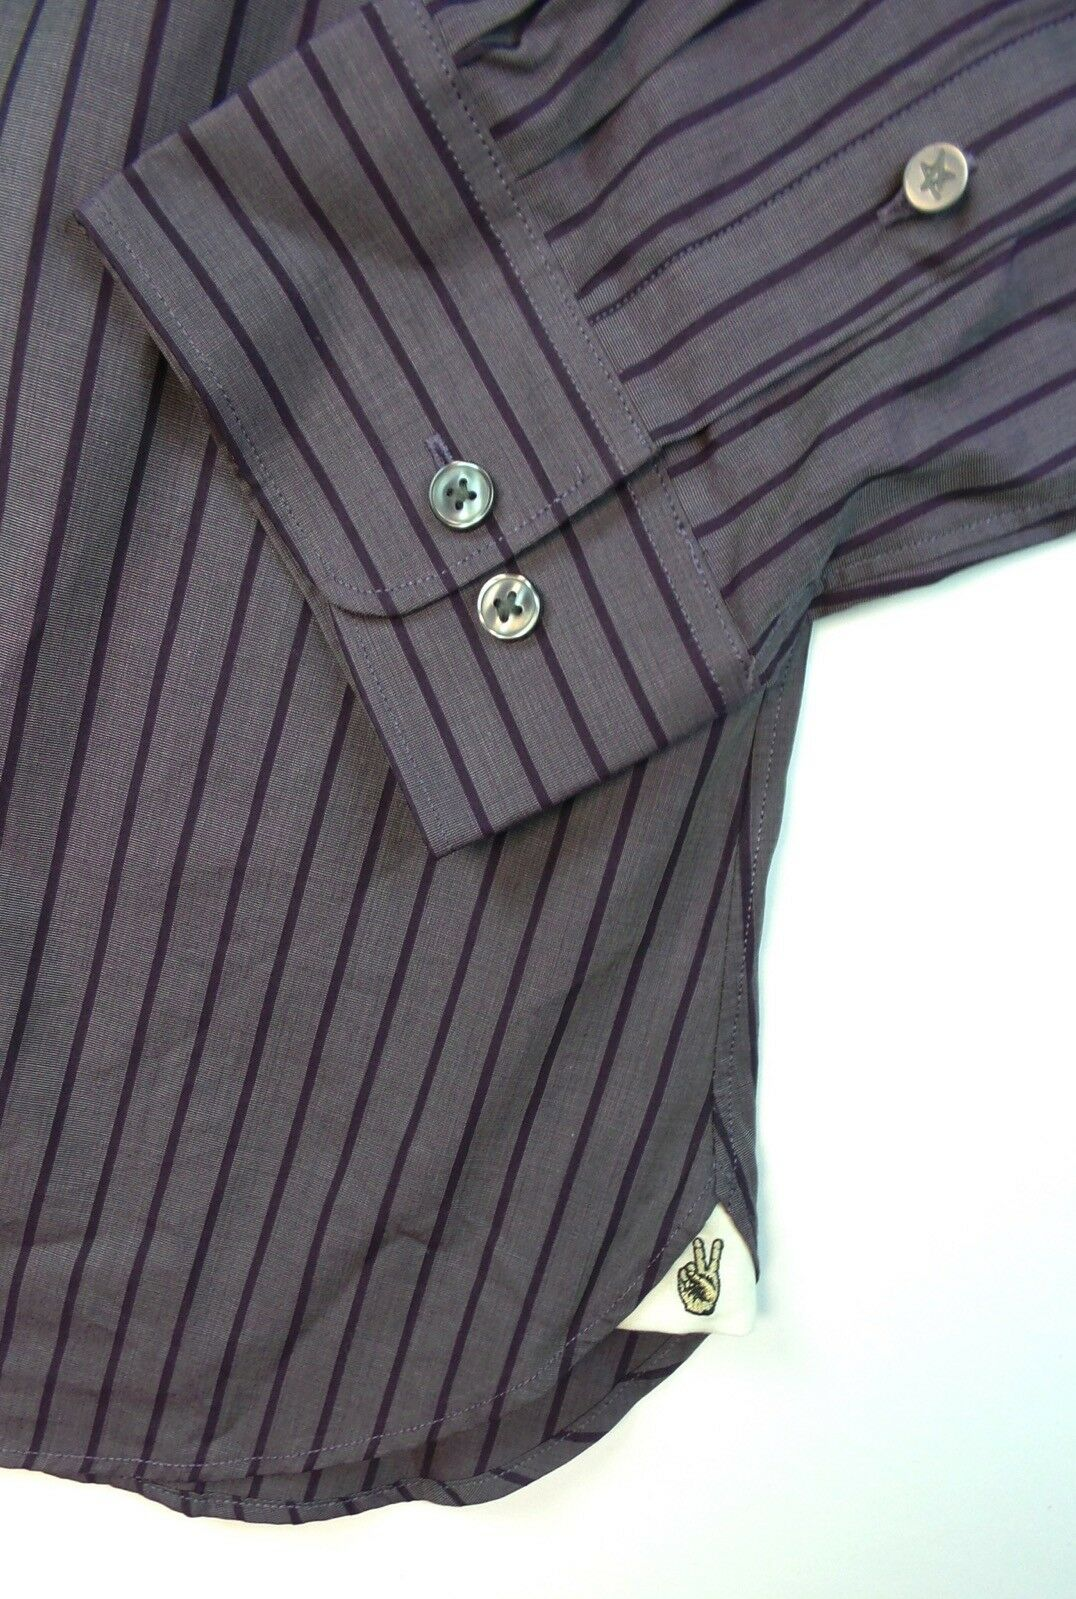 John Varvatos USA Slim Fit Purple Striped Dress Shirt Size 17 - 34 35